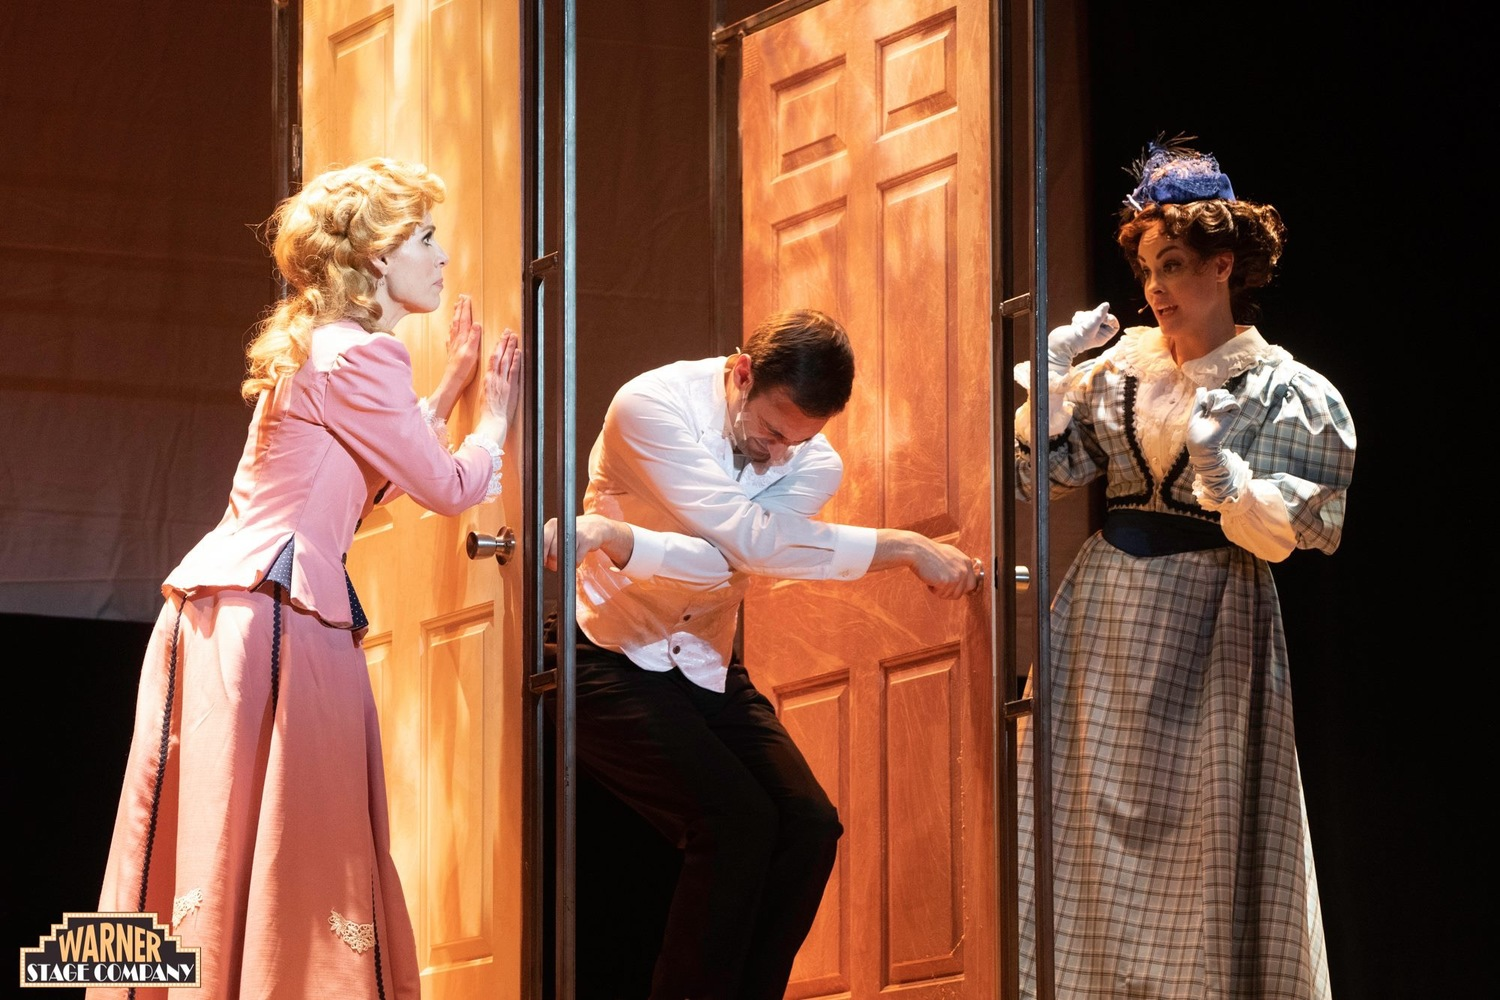 BWW Review: A GENTLEMAN'S GUIDE TO LOVE AND MURDER at Warner Theatre